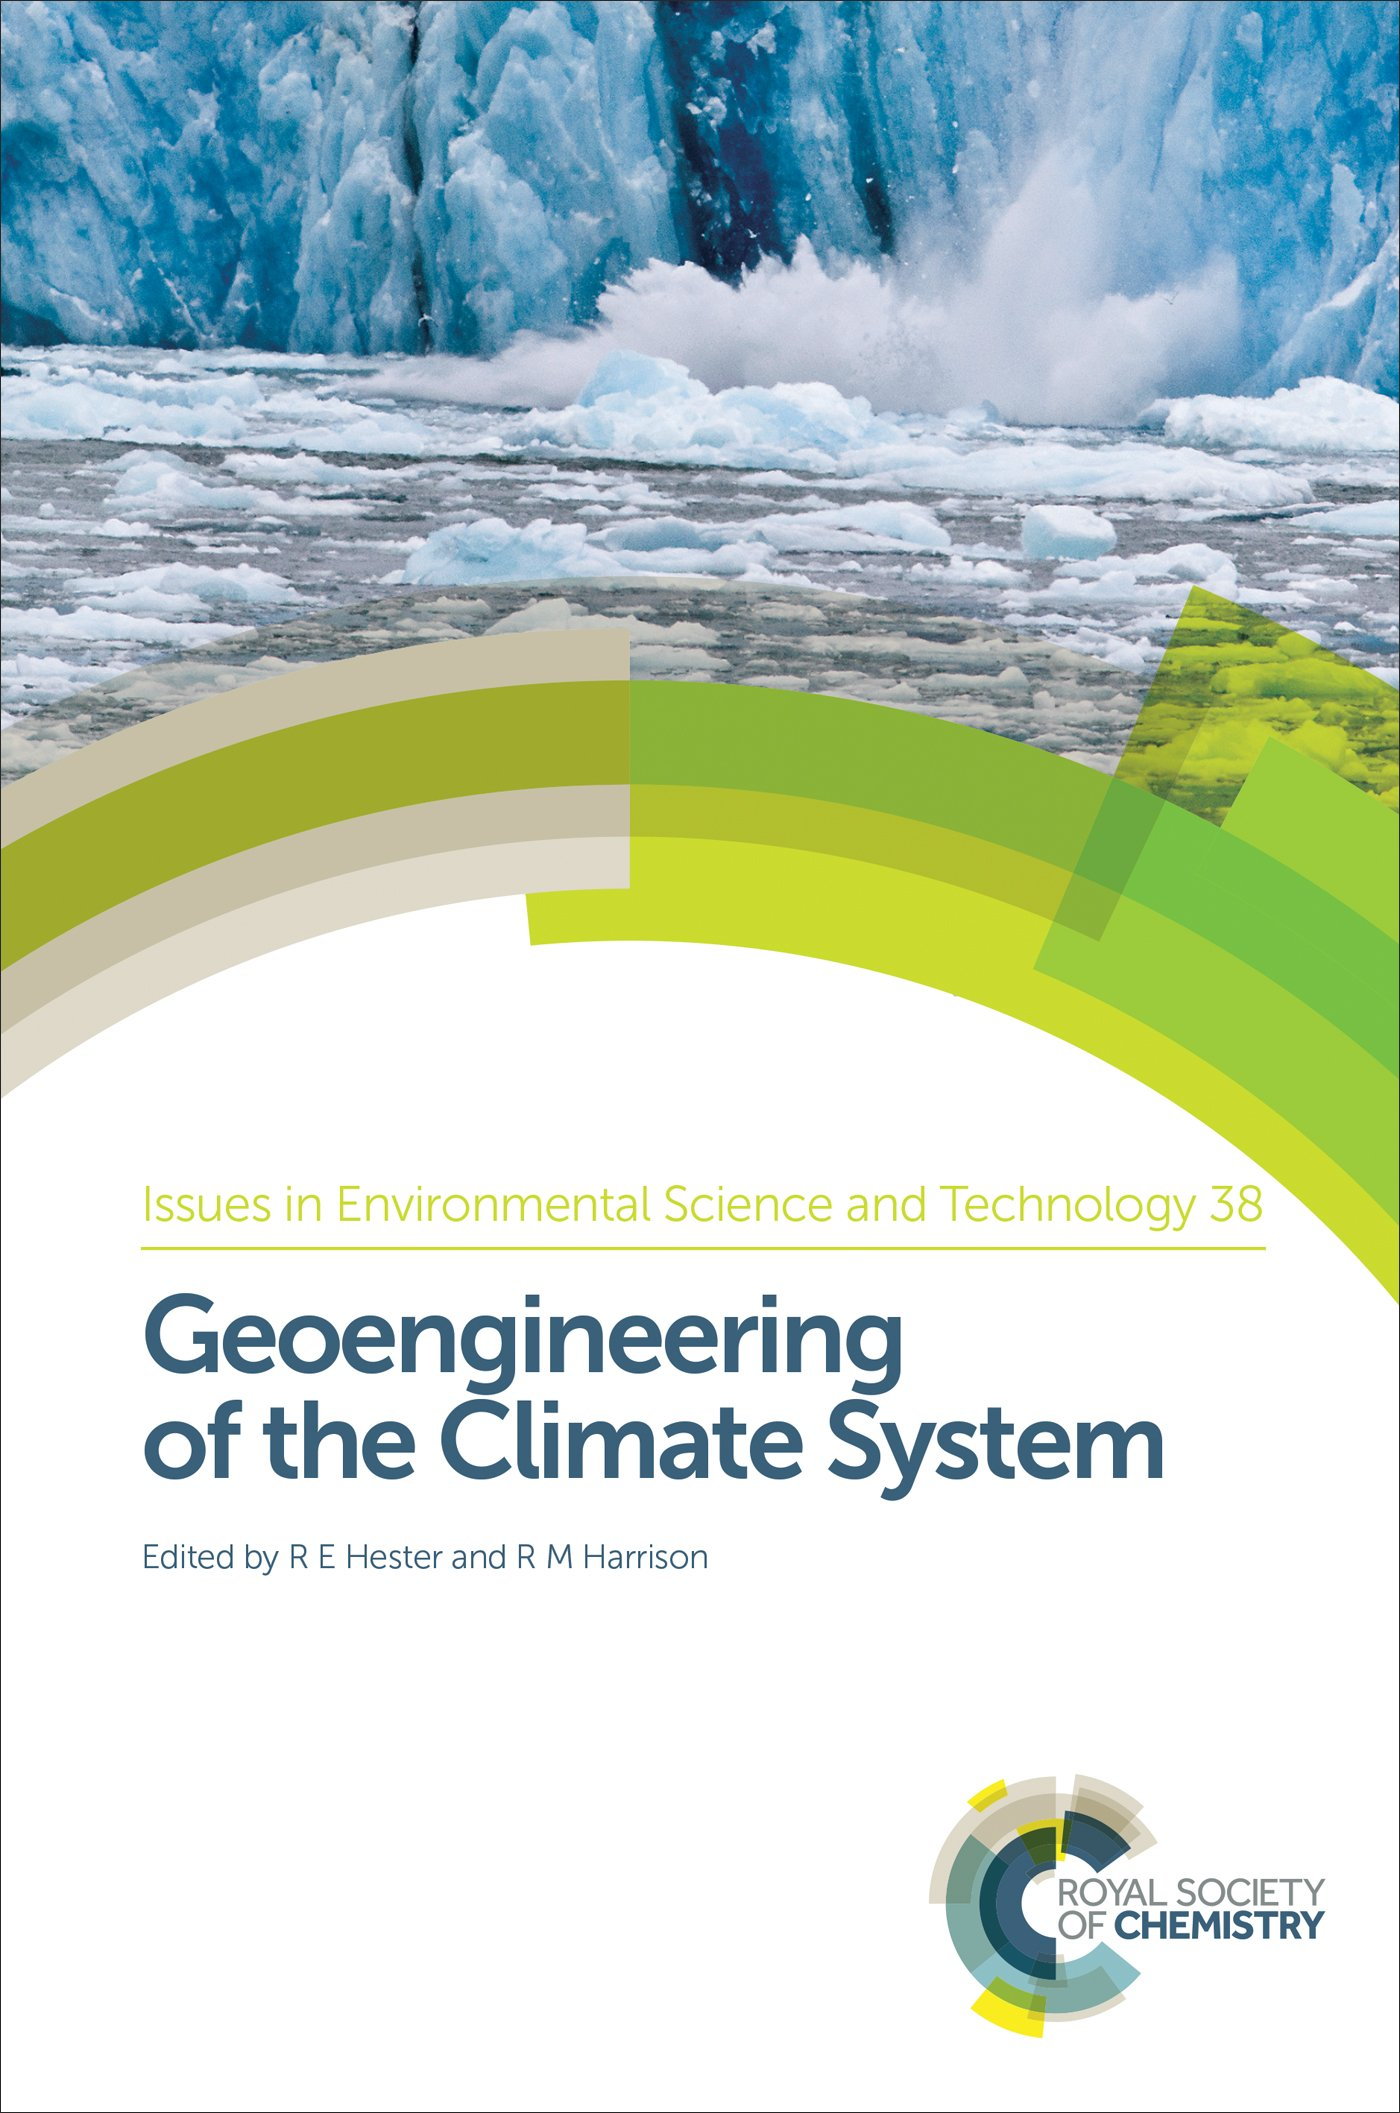 Image OfGeoengineering Of The Climate System: RSC (ISSN Book 38) (English Edition)